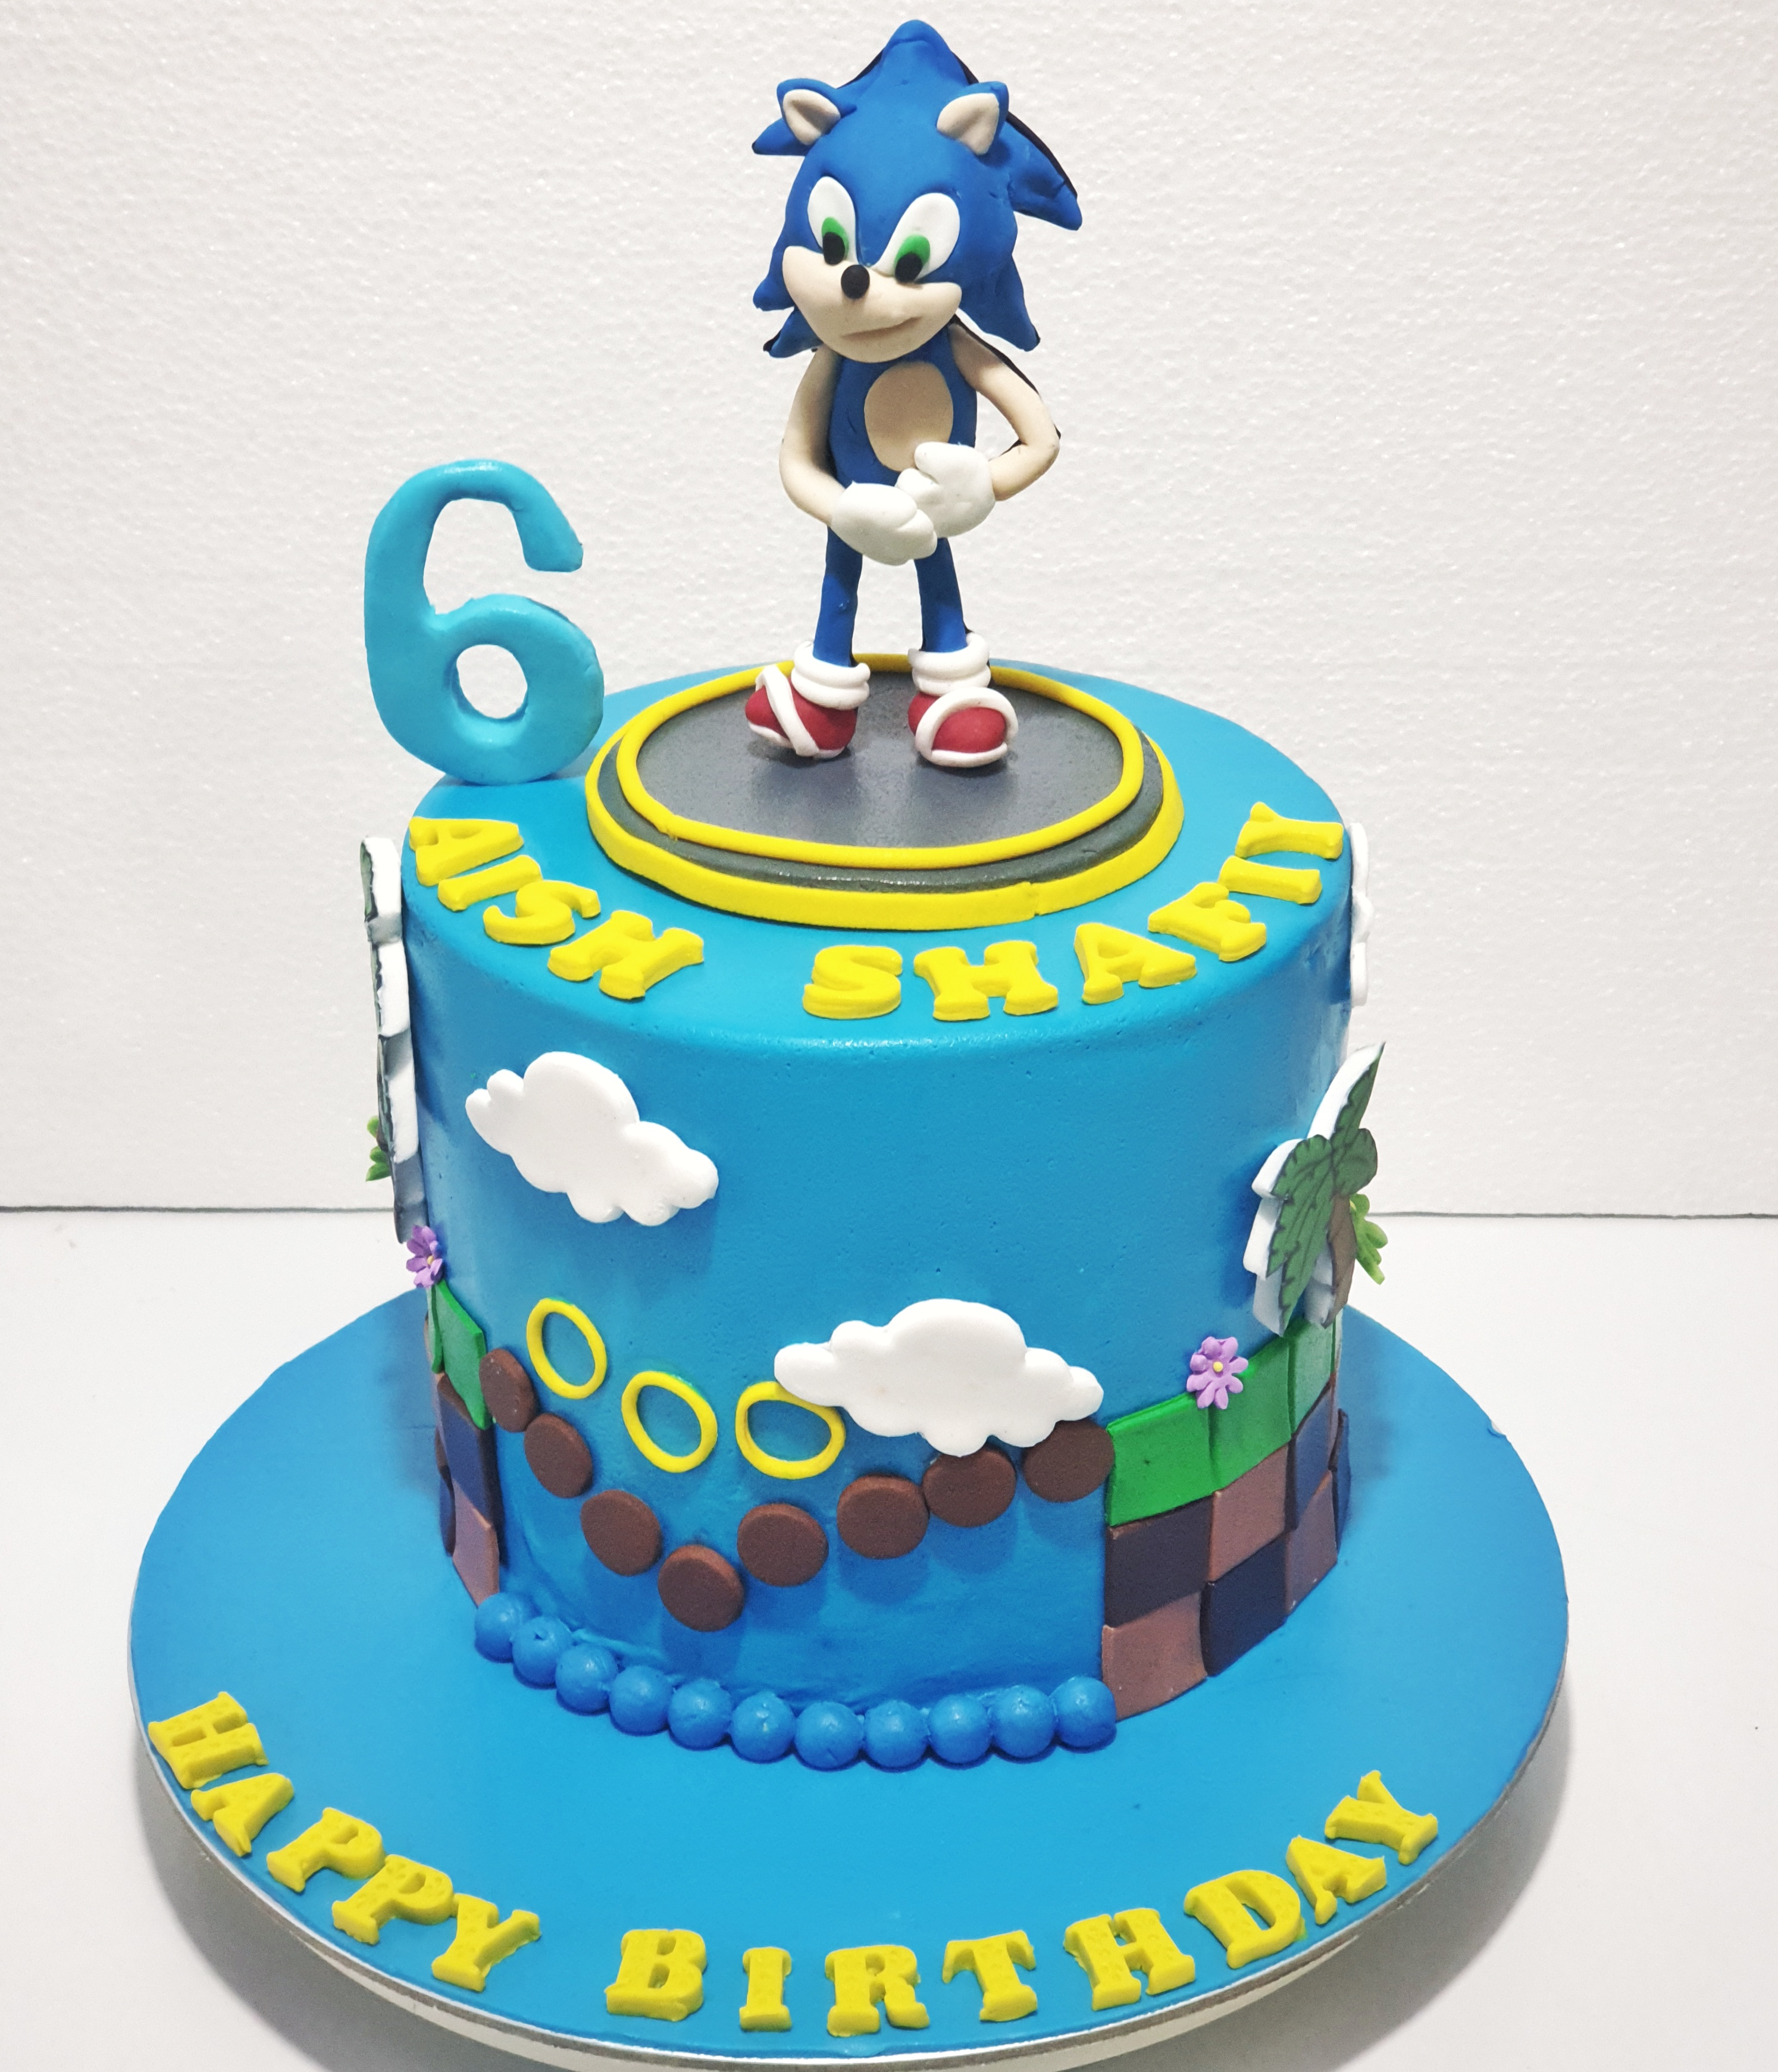 Terrific Sonic Hedgehog Birthday Cake Sooperlicious Cakes Funny Birthday Cards Online Bapapcheapnameinfo